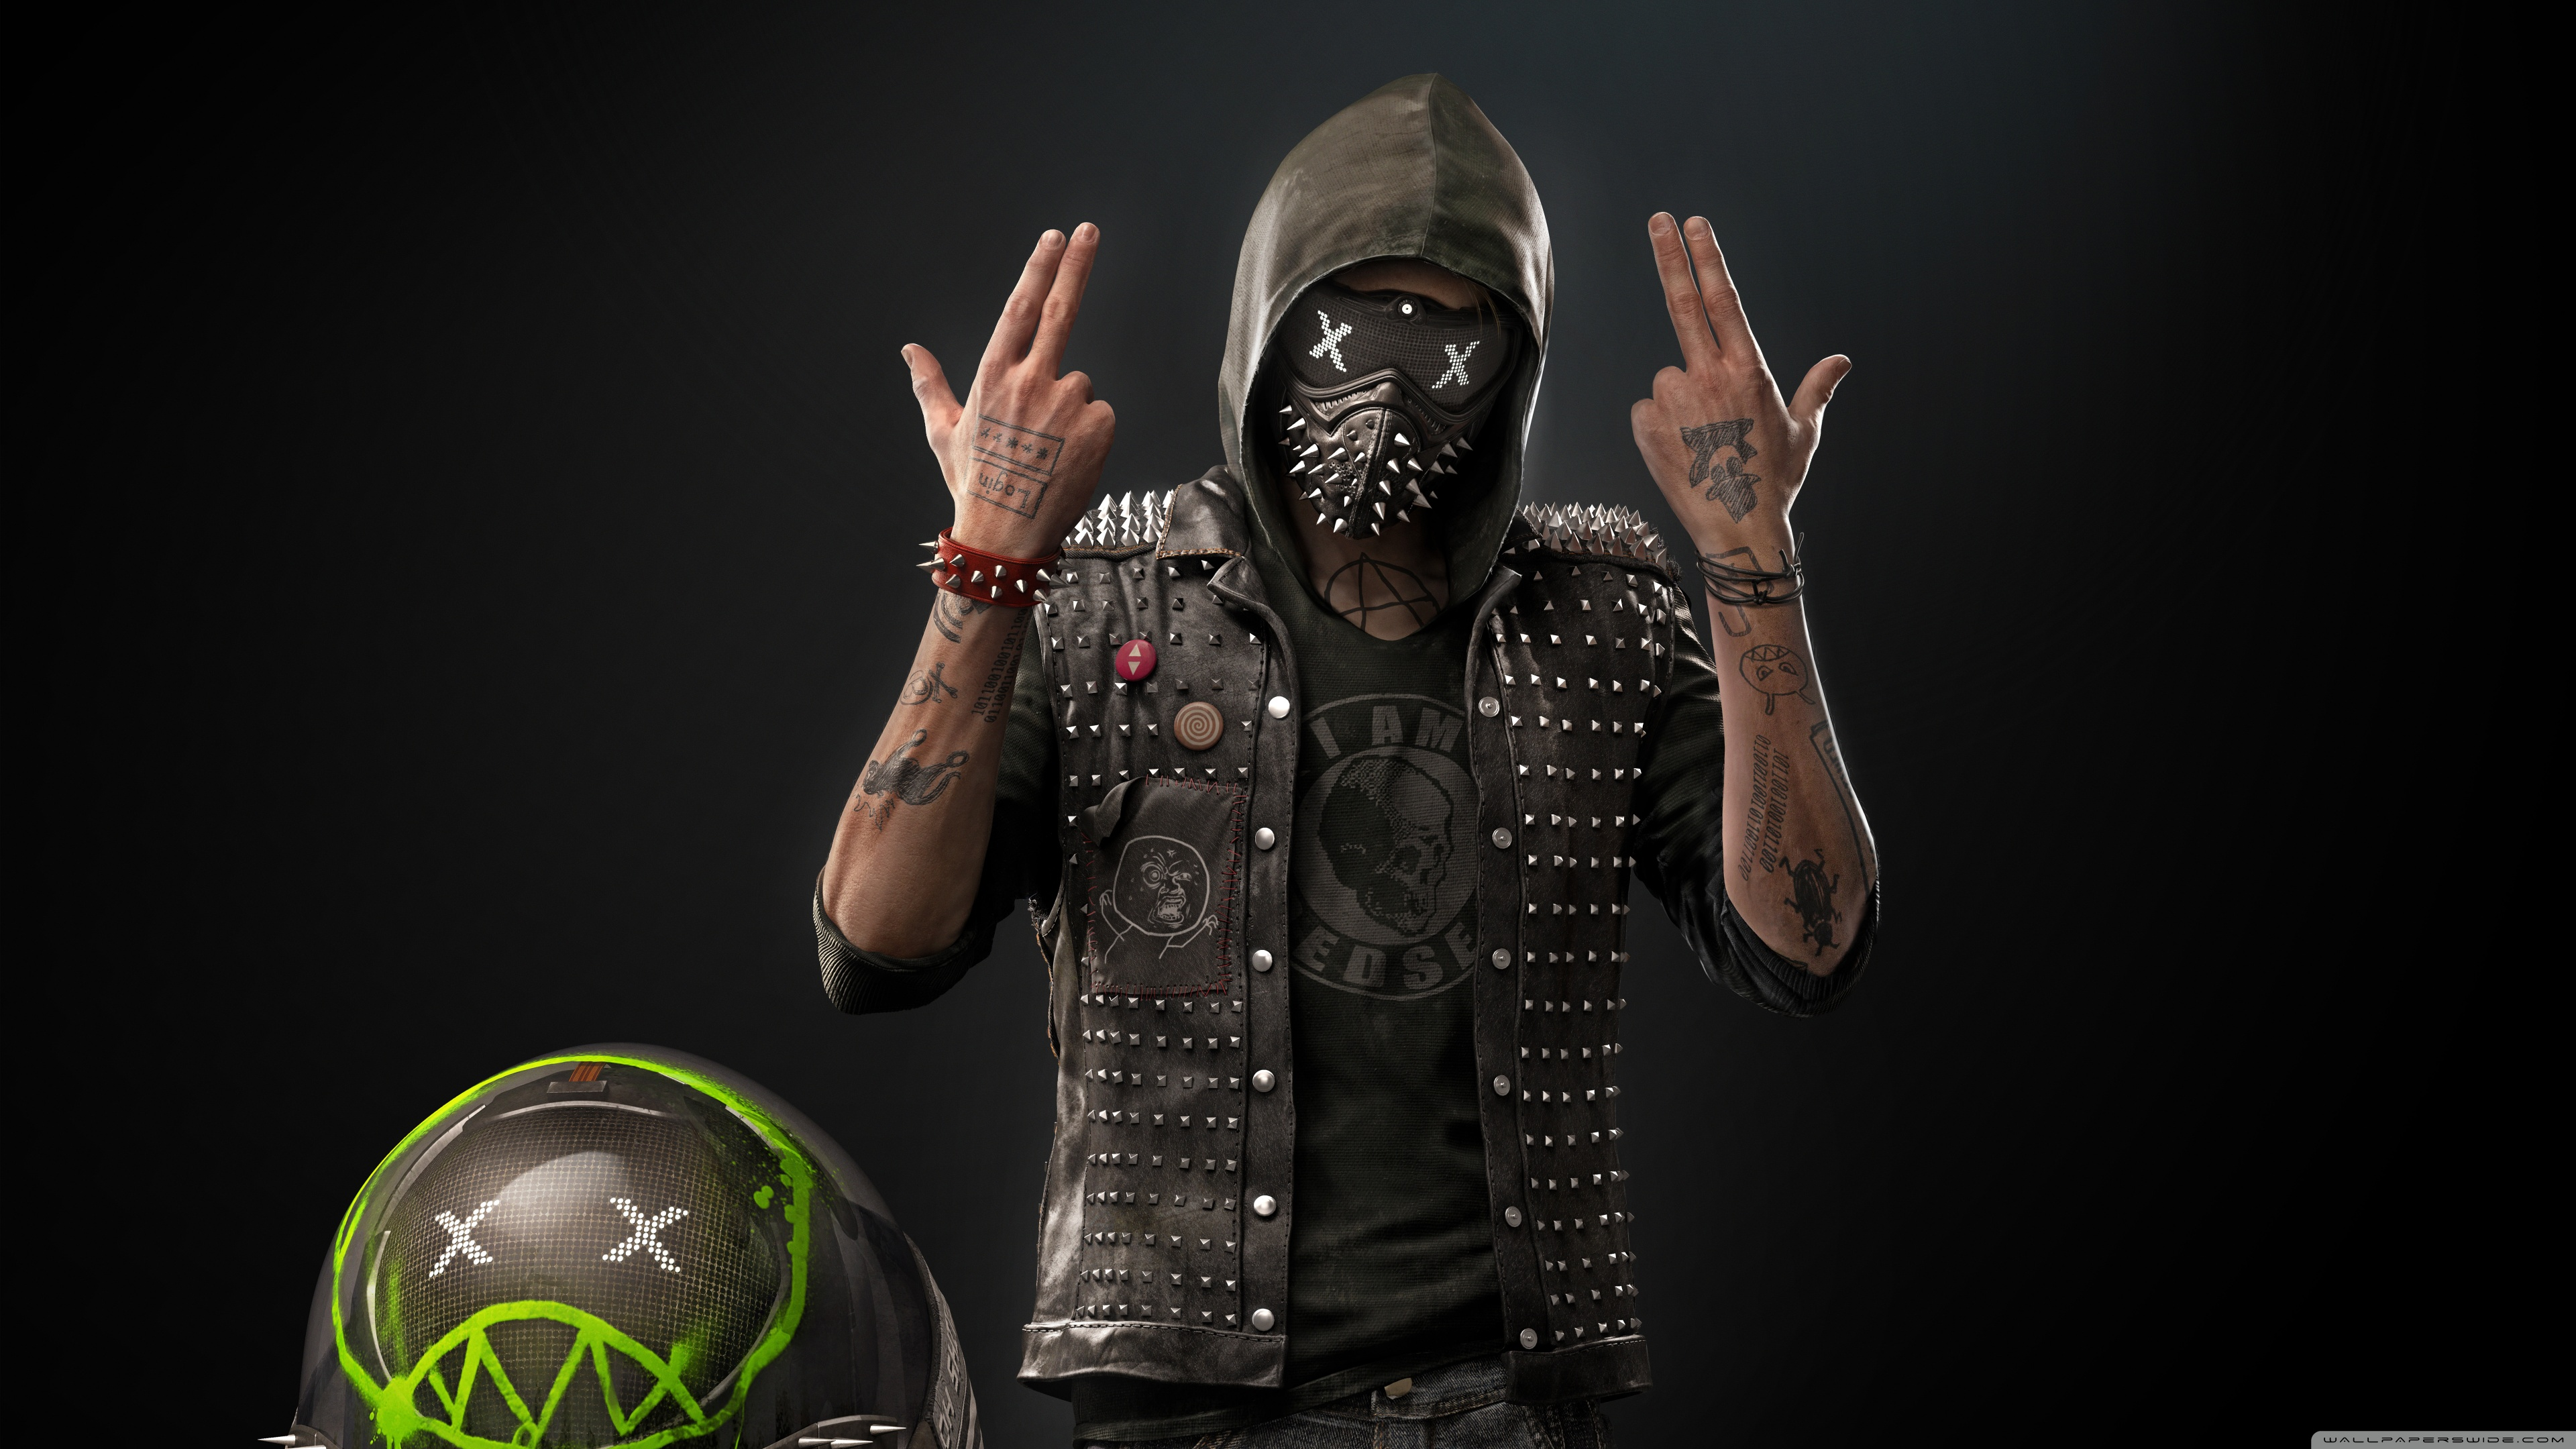 Uhd 16 - - Watch Dogs 2 Wrench , HD Wallpaper & Backgrounds